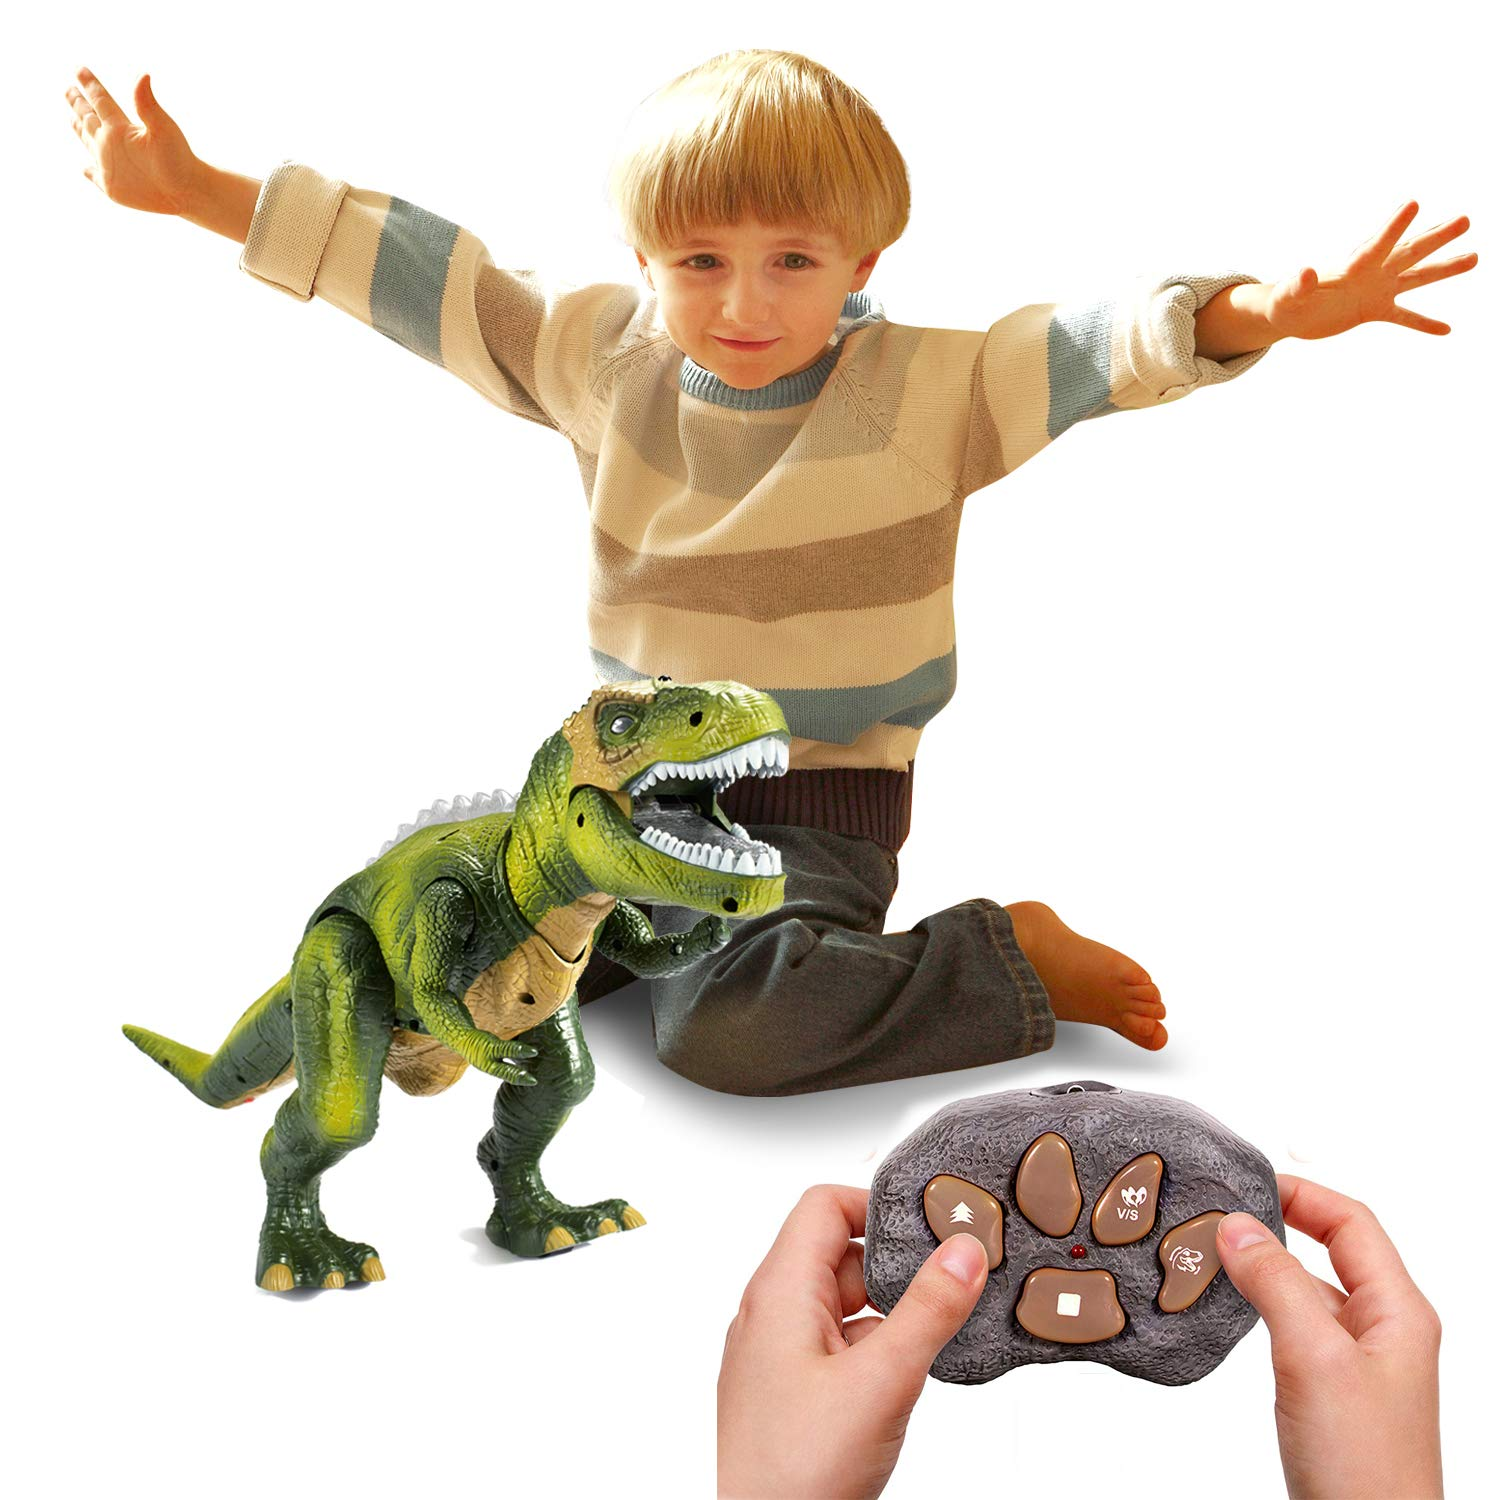 Tuko Light Up Remote Control Dinosaur Toys Jurassic World Walking and Roaring Realistic T-Rex Dinosaur Toys with Glowing Eyes, Walking Movement, Shaking Head for Toddlers Boys Girls by Tuko (Image #7)